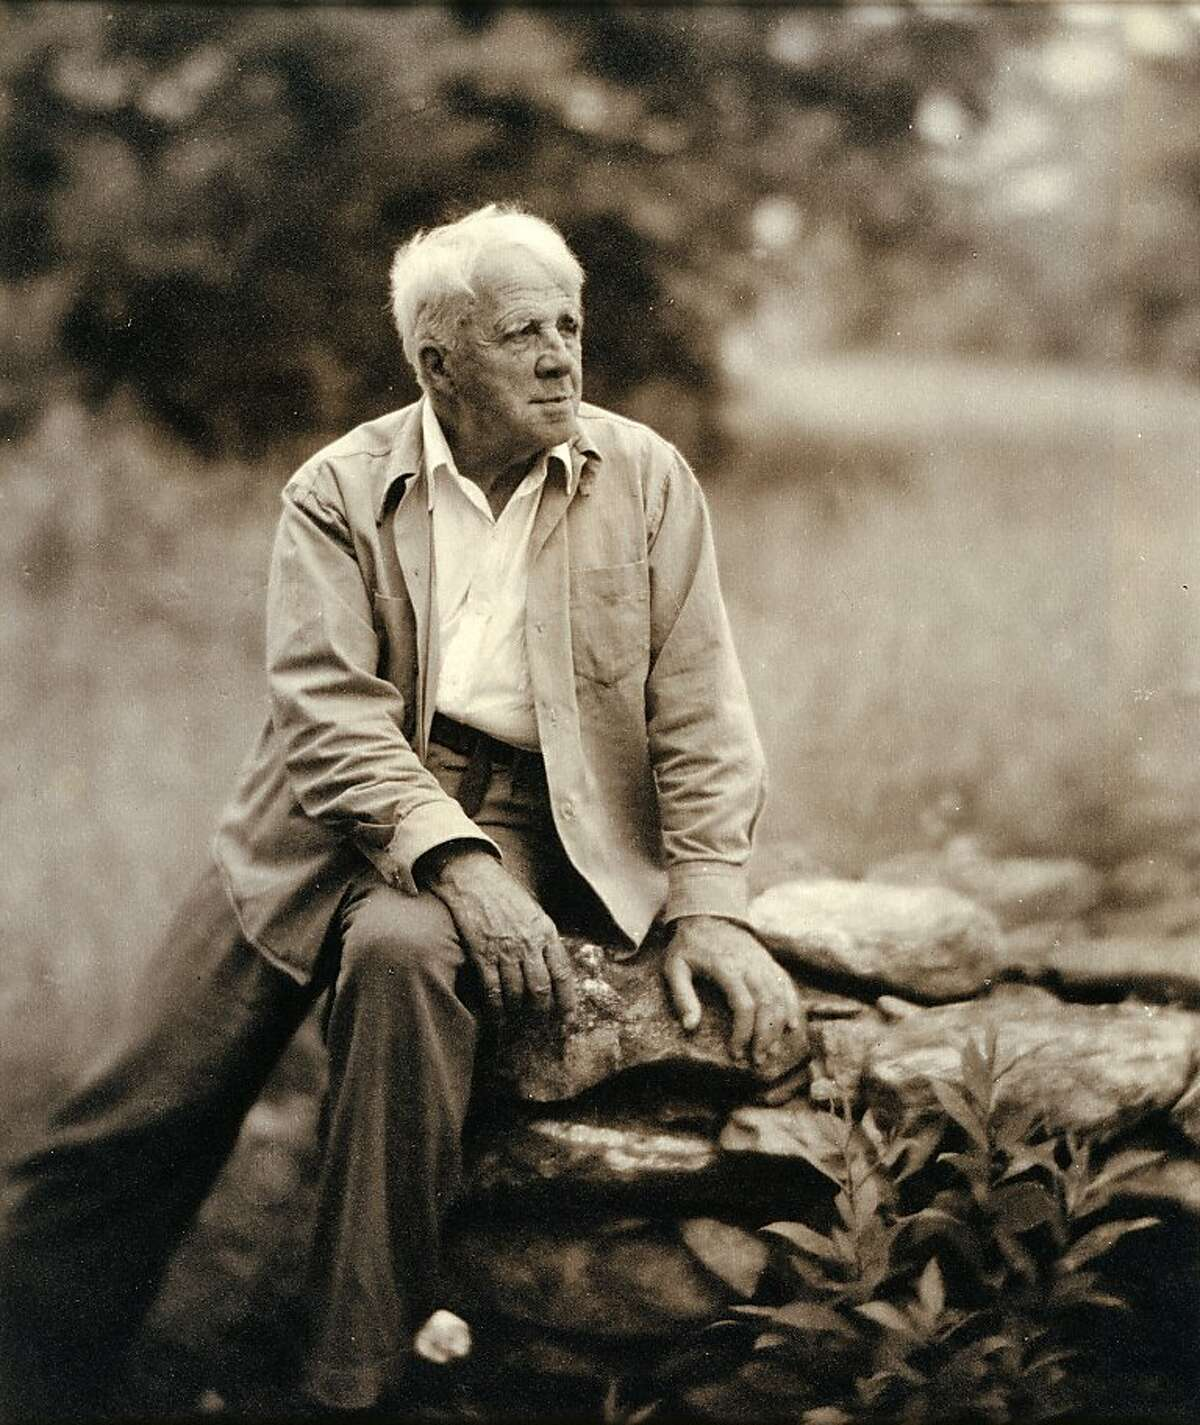 Robert Frost Frost's poetry evokes snowy woods and New England farms, but he grew up here in San Francisco. He was born in the city in 1874; father William edited the San Francisco Evening Bulletin.